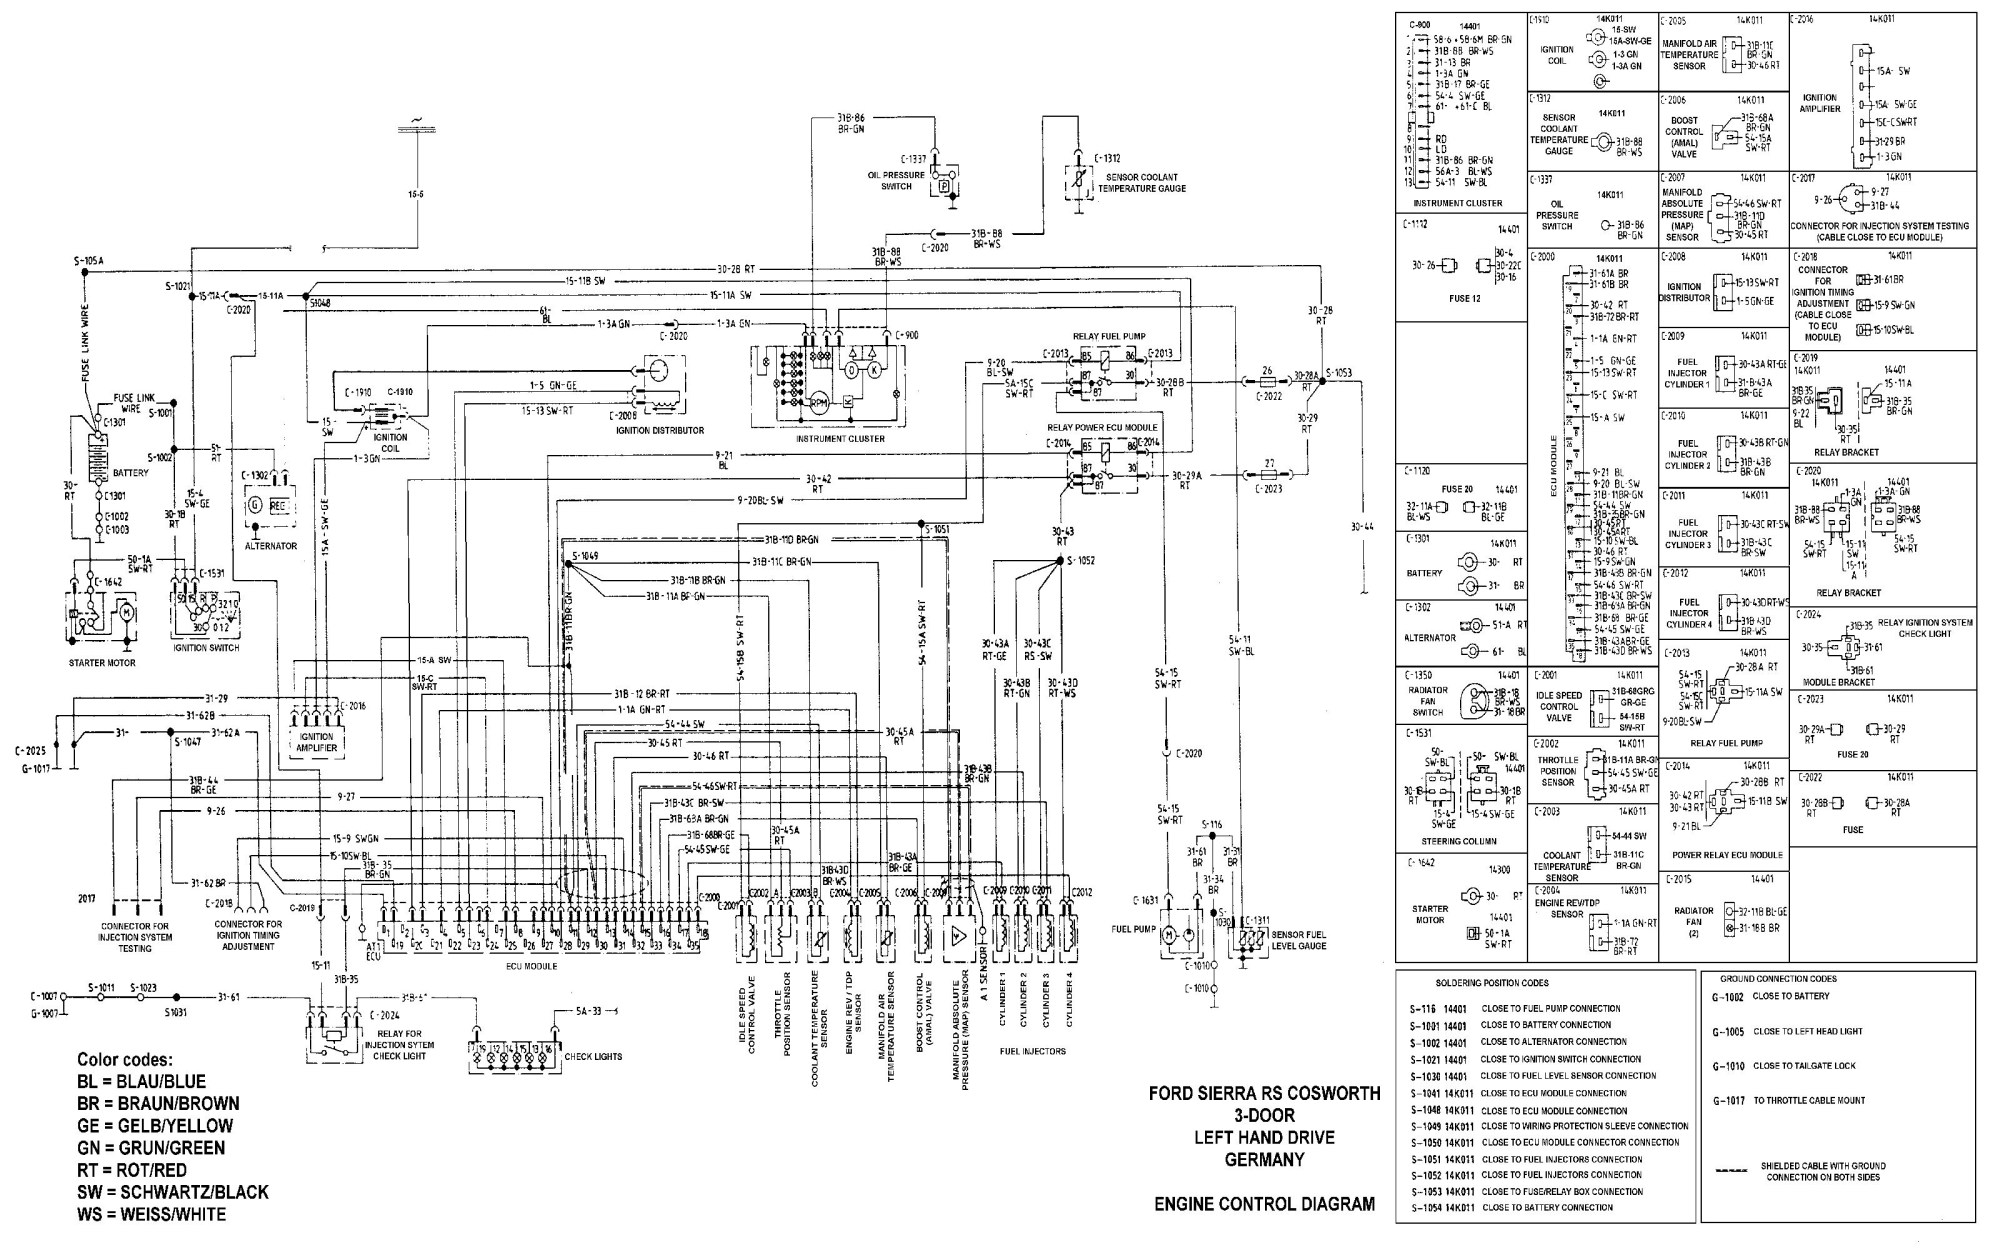 hight resolution of ford mondeo wiring diagram pdf detailed wiring diagramsford fiesta wiring diagram pdf detailed wiring diagram 95